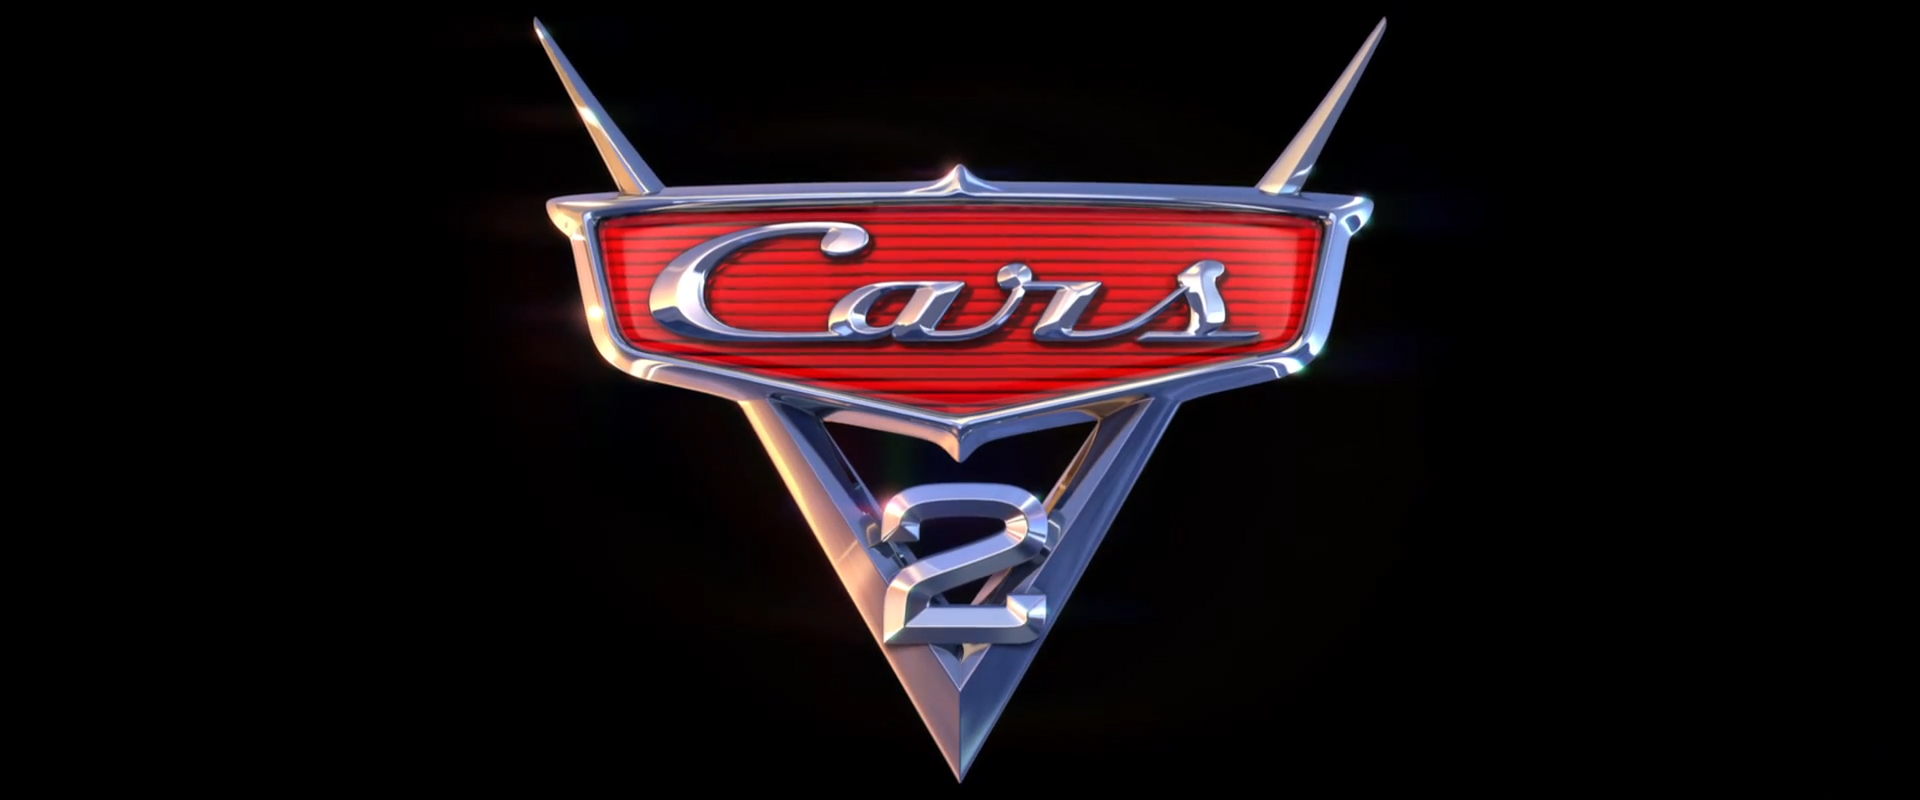 Image Cars 2 Title Card Png Pixar Wiki Fandom Powered By Wikia